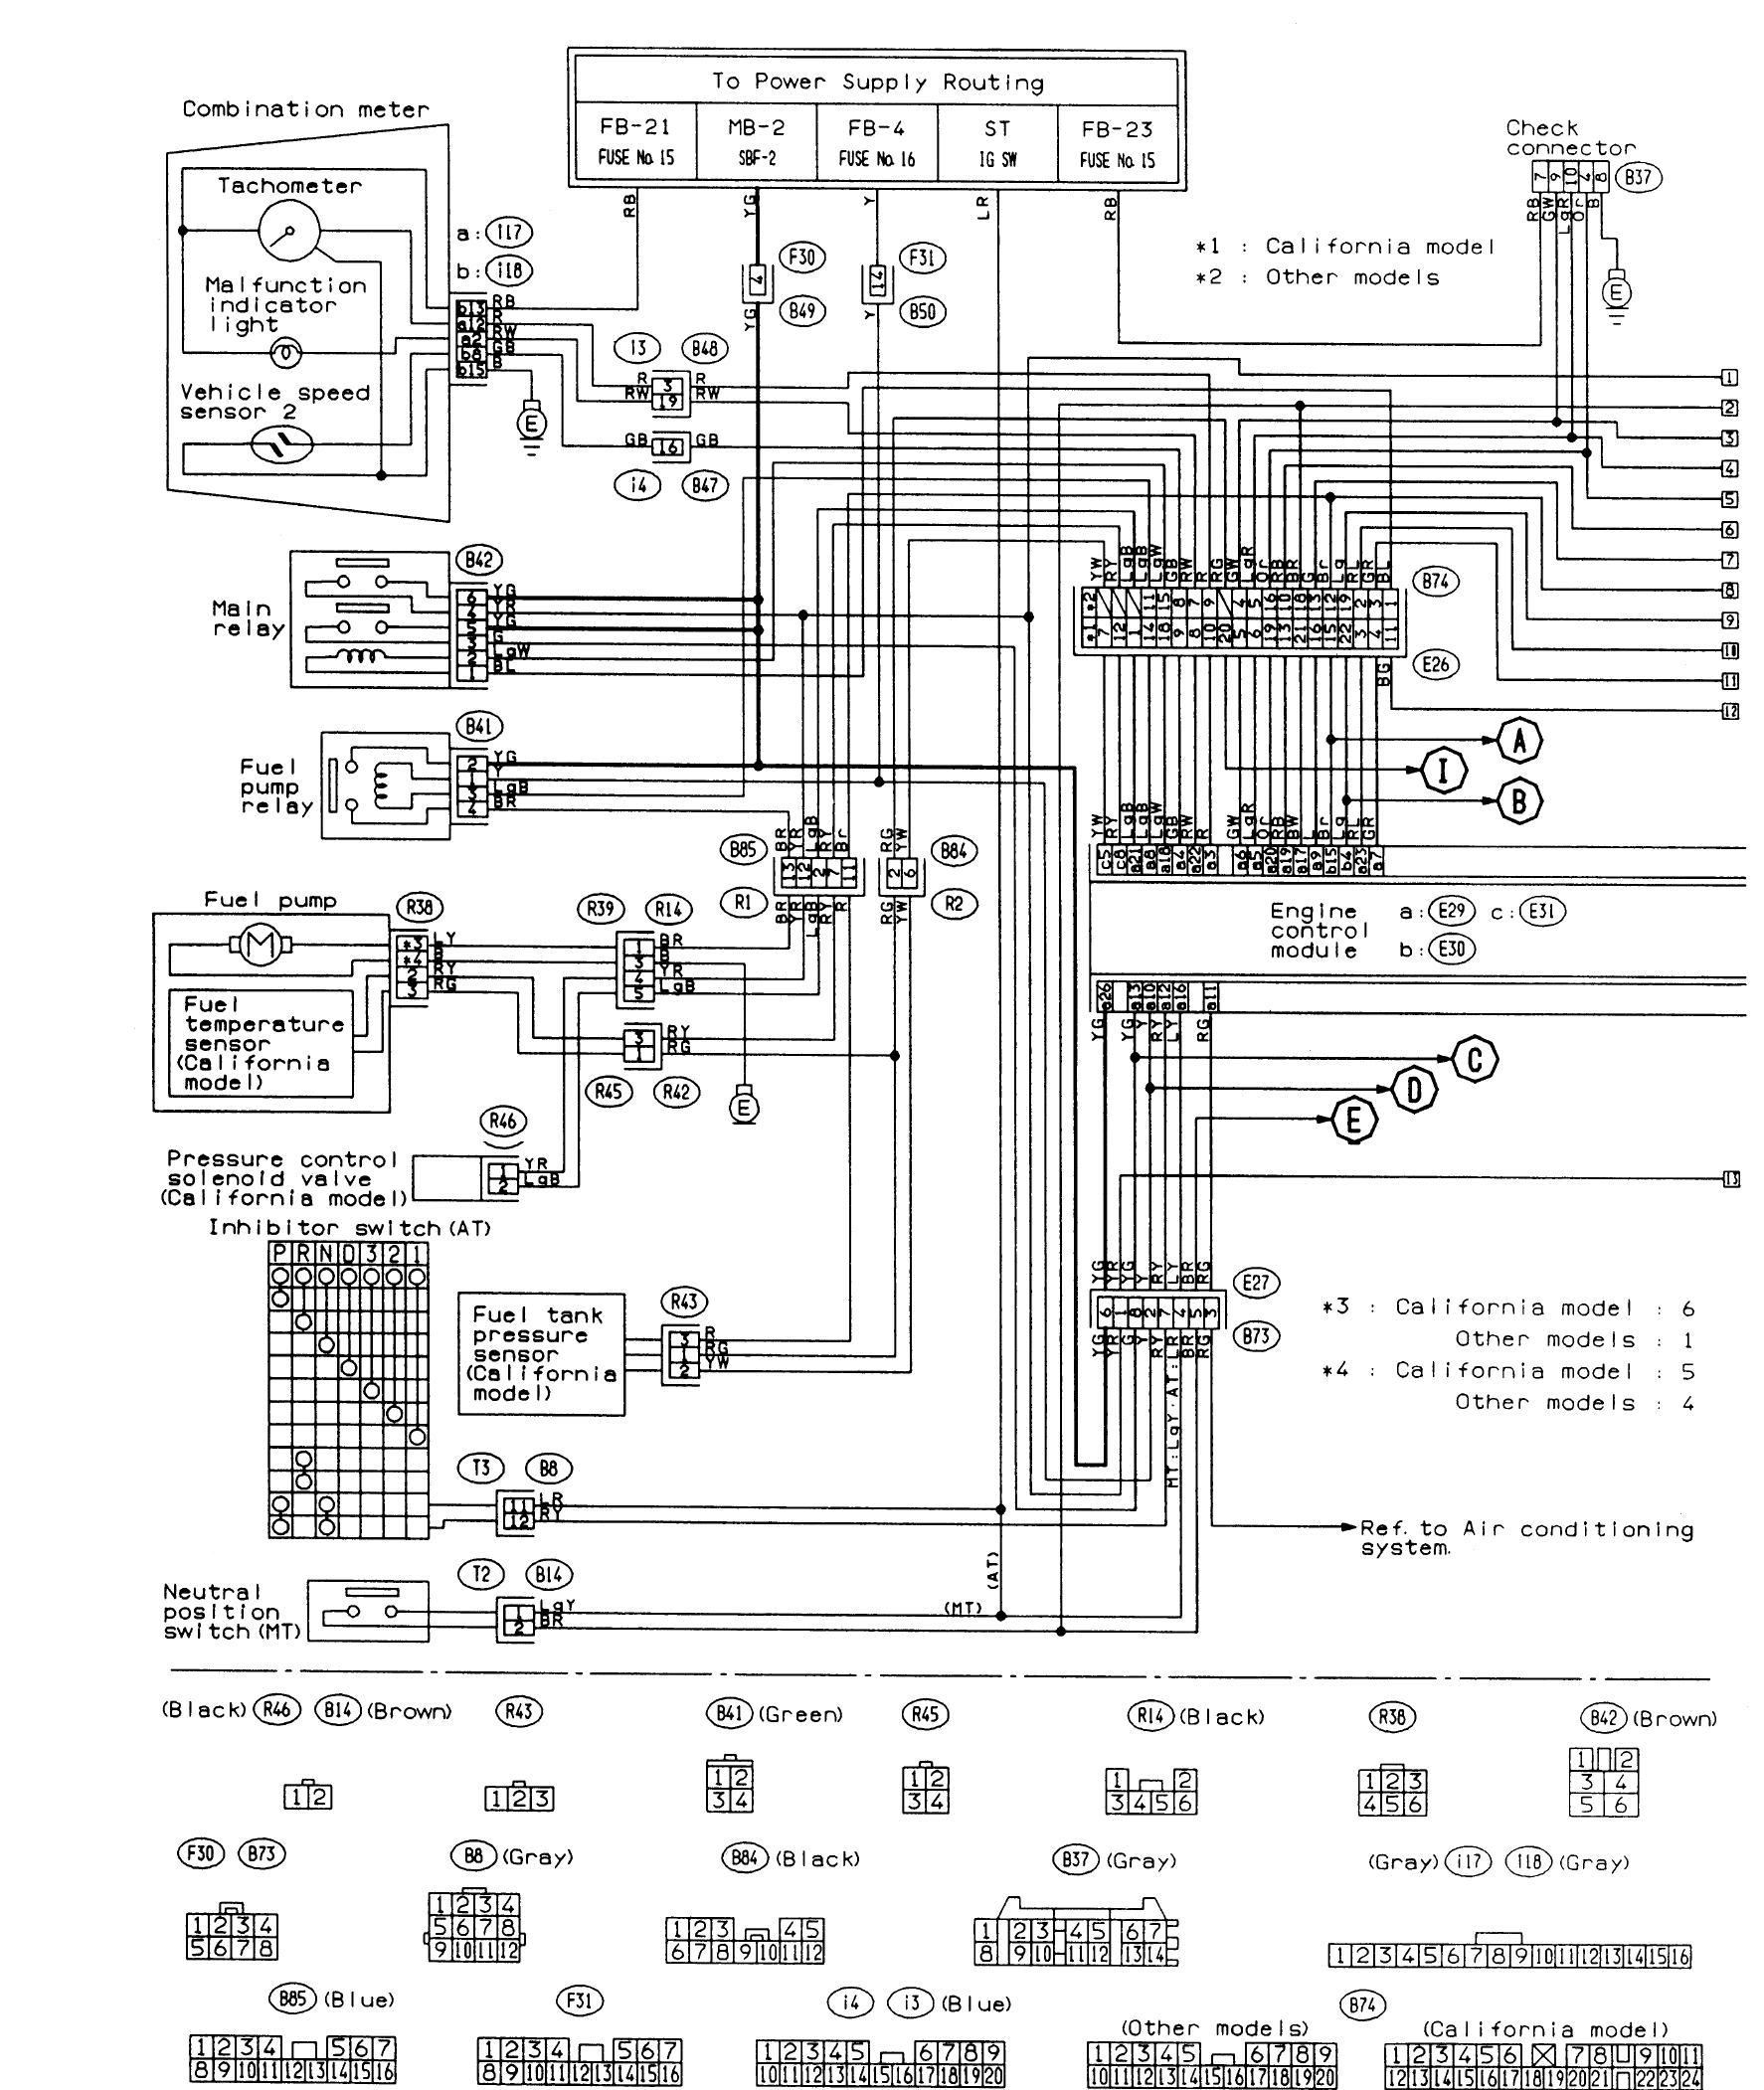 subaru ecu wiring diagram FUSlrCX 2002 wrx wiring diagram 24v trolling motor wiring diagram \u2022 wiring  at mifinder.co